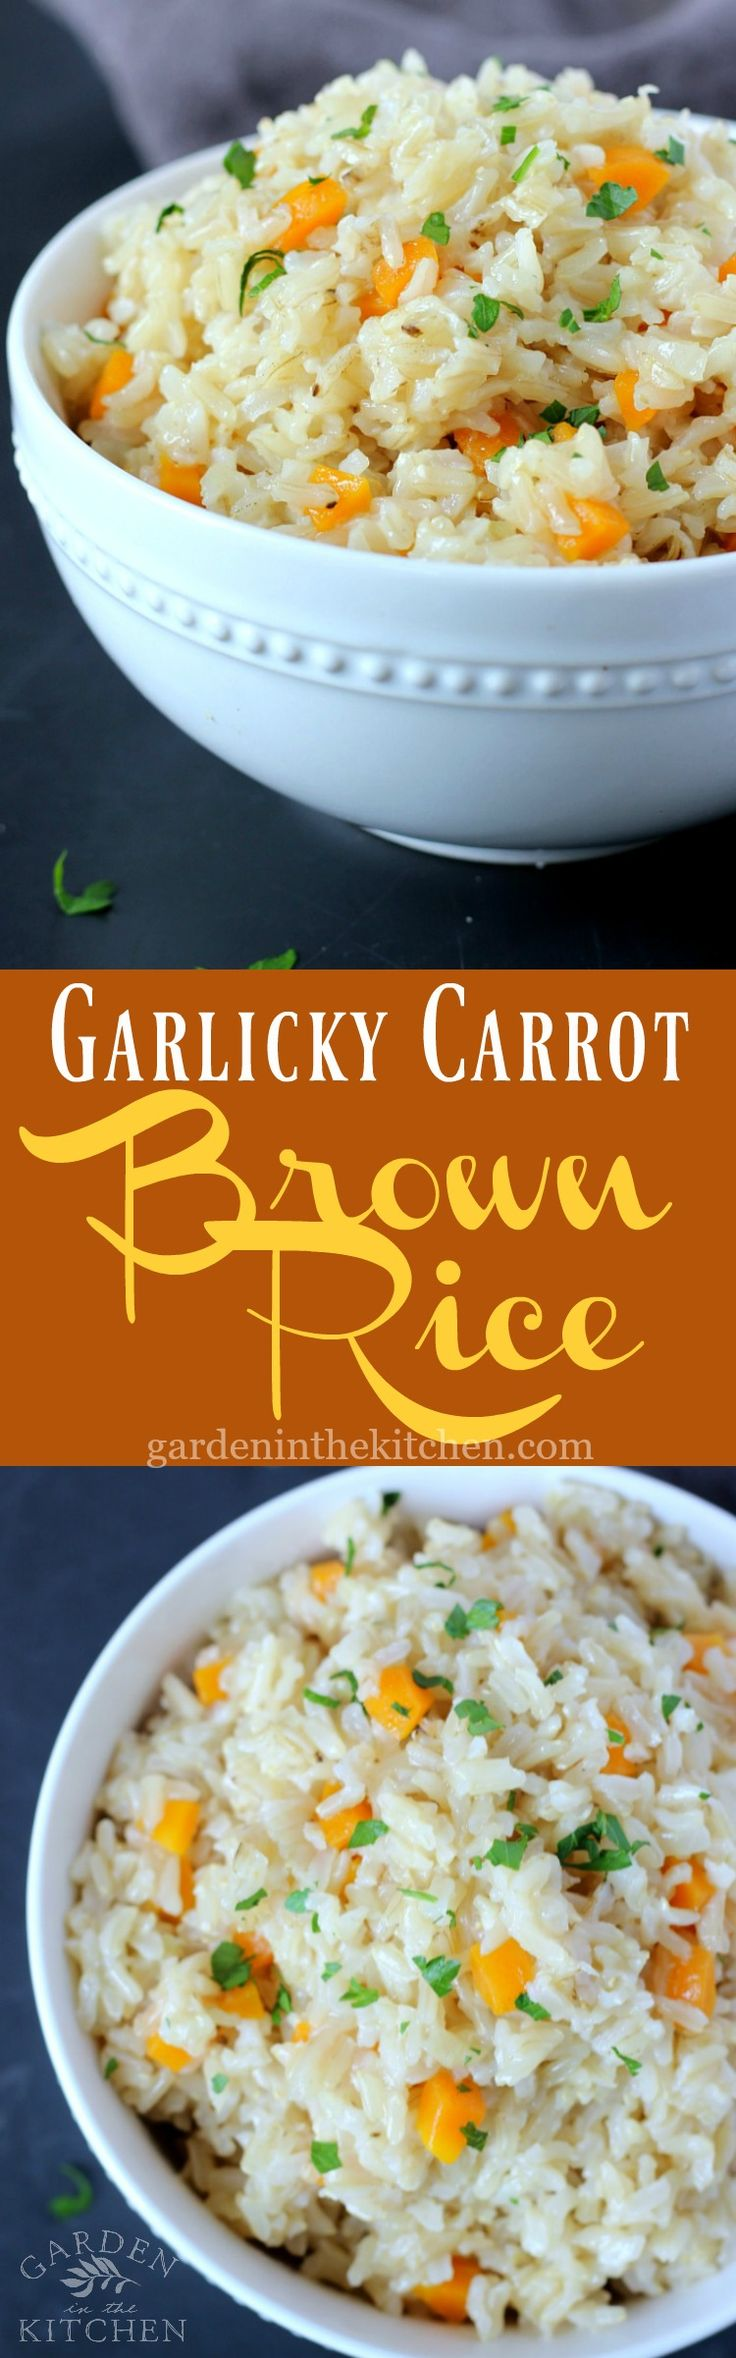 Garlicky Carrot Brown Rice - Brown Rice sautéed with pressed garlic, onion in oil to lock in the flavors. Simply an irresistible side dish to complete all your meals